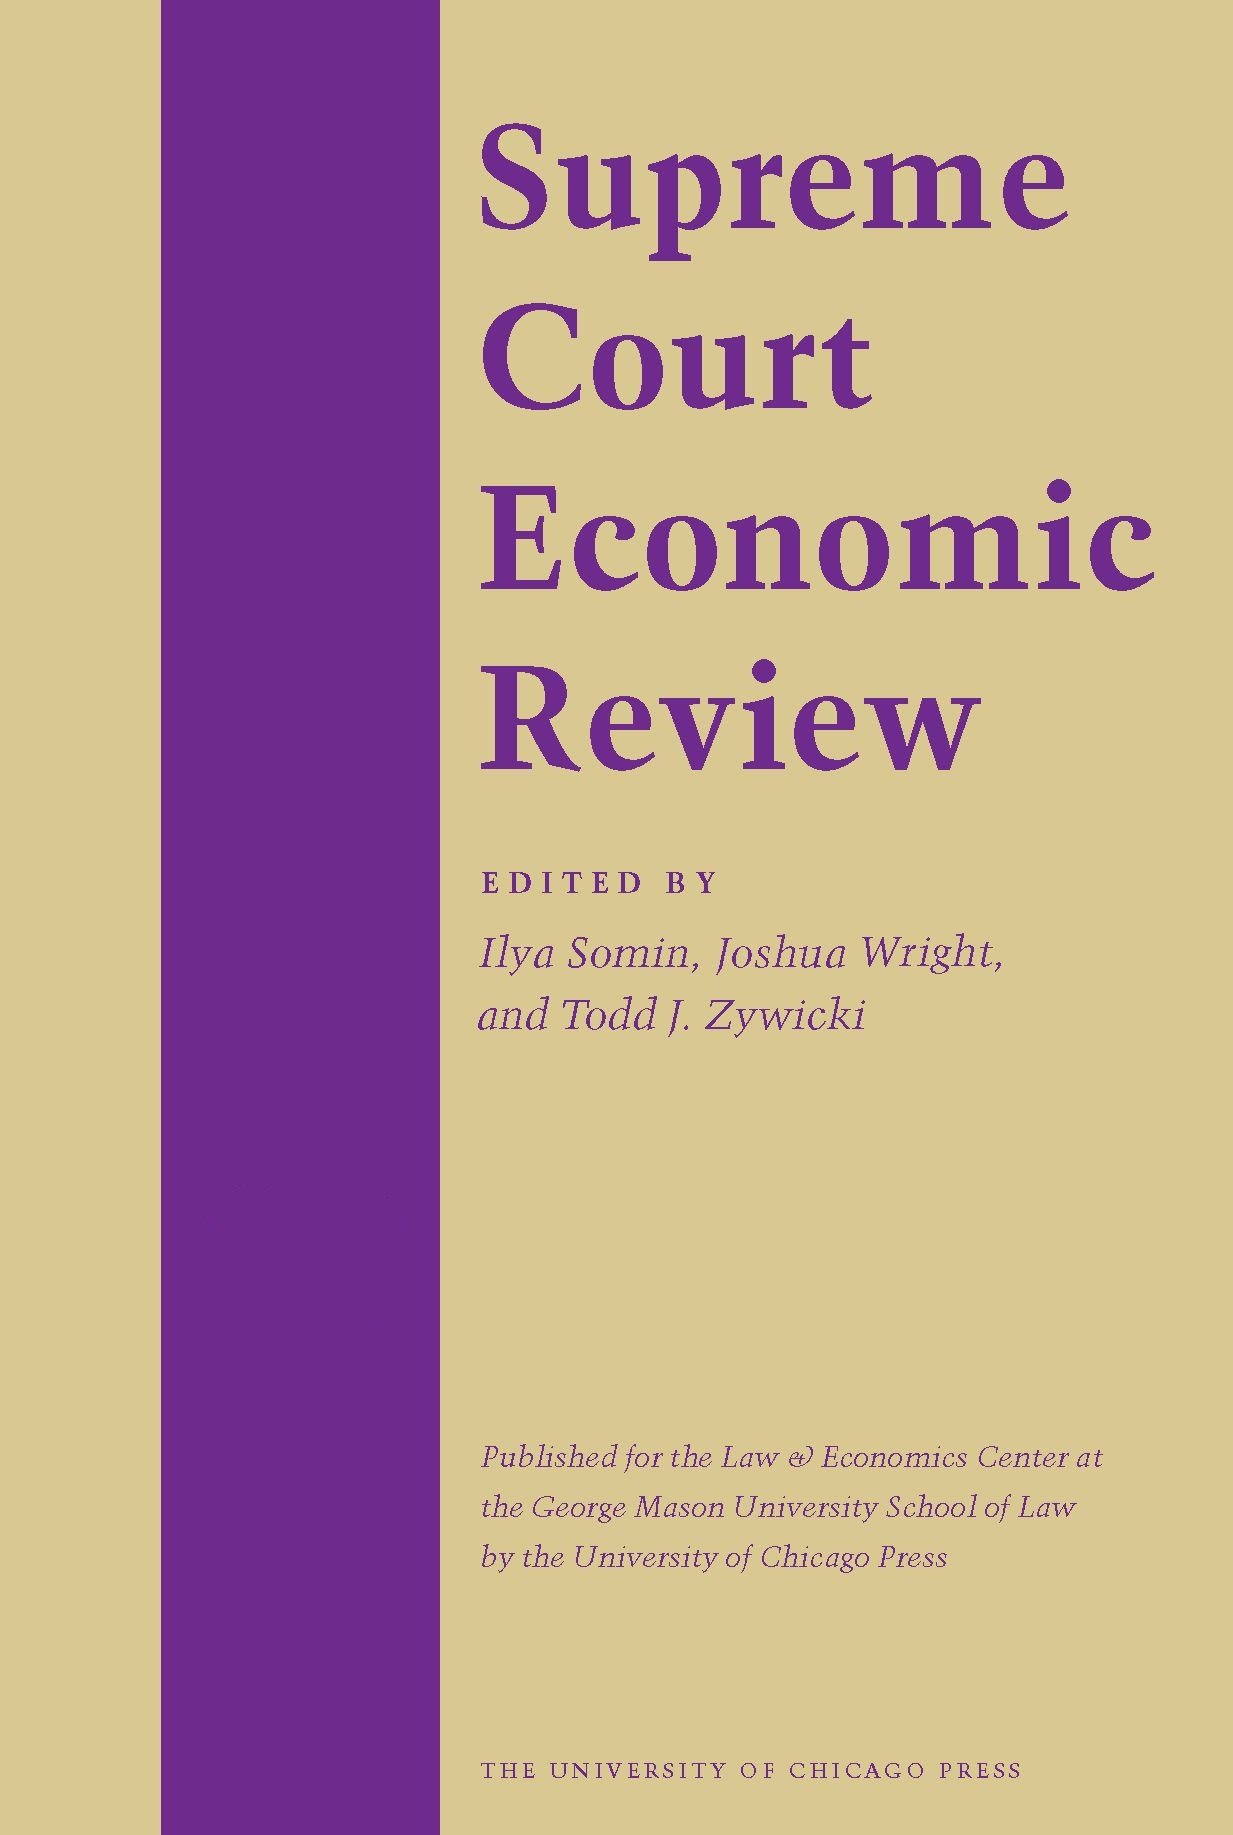 Supreme Court Economic Review, Volume 27